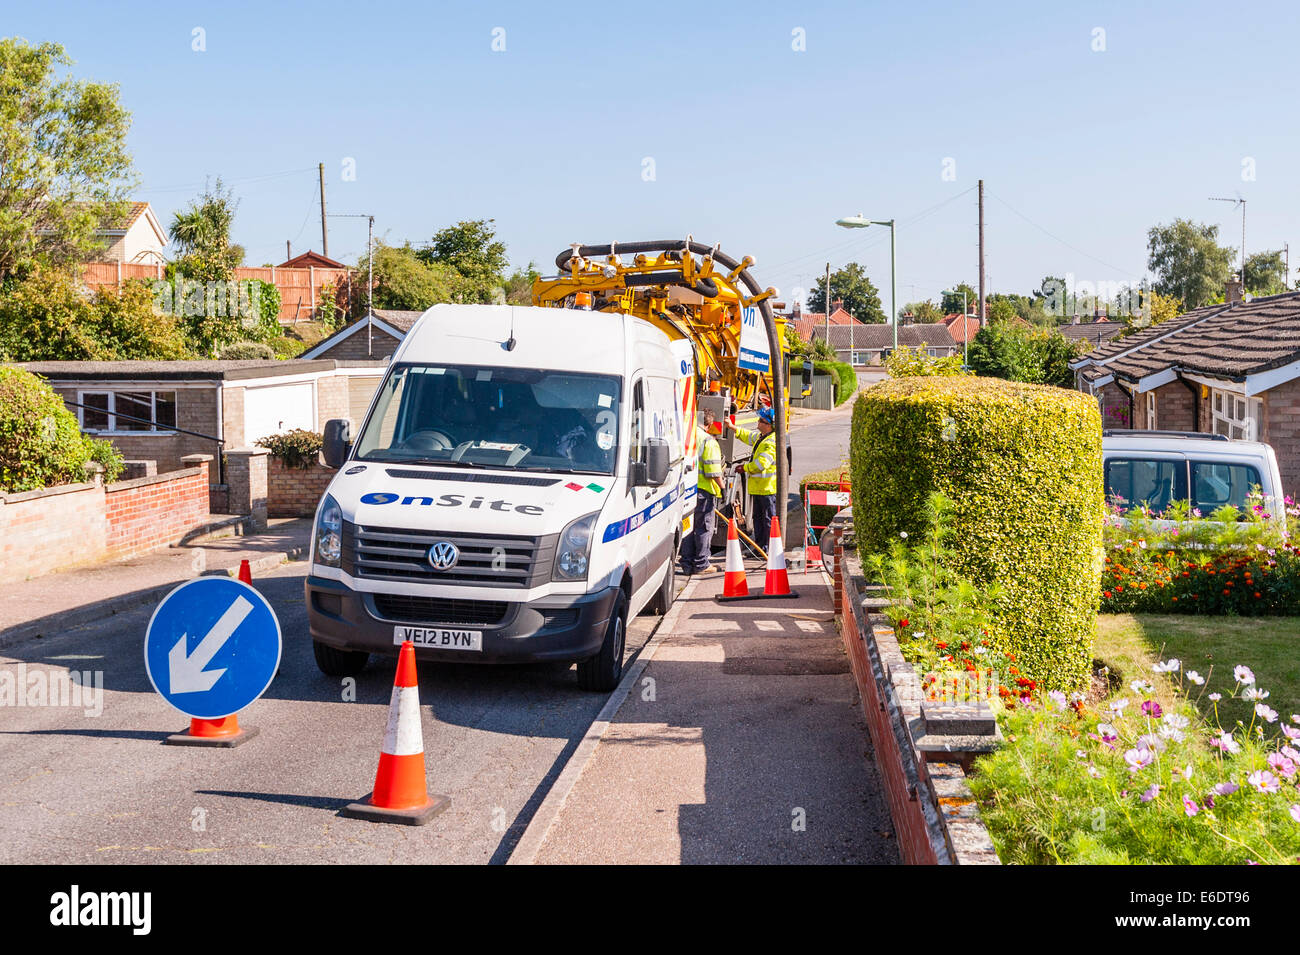 A contracted firm cleaning out the sewer pipes in the road and checking the pipes with a camera in the Uk - Stock Image